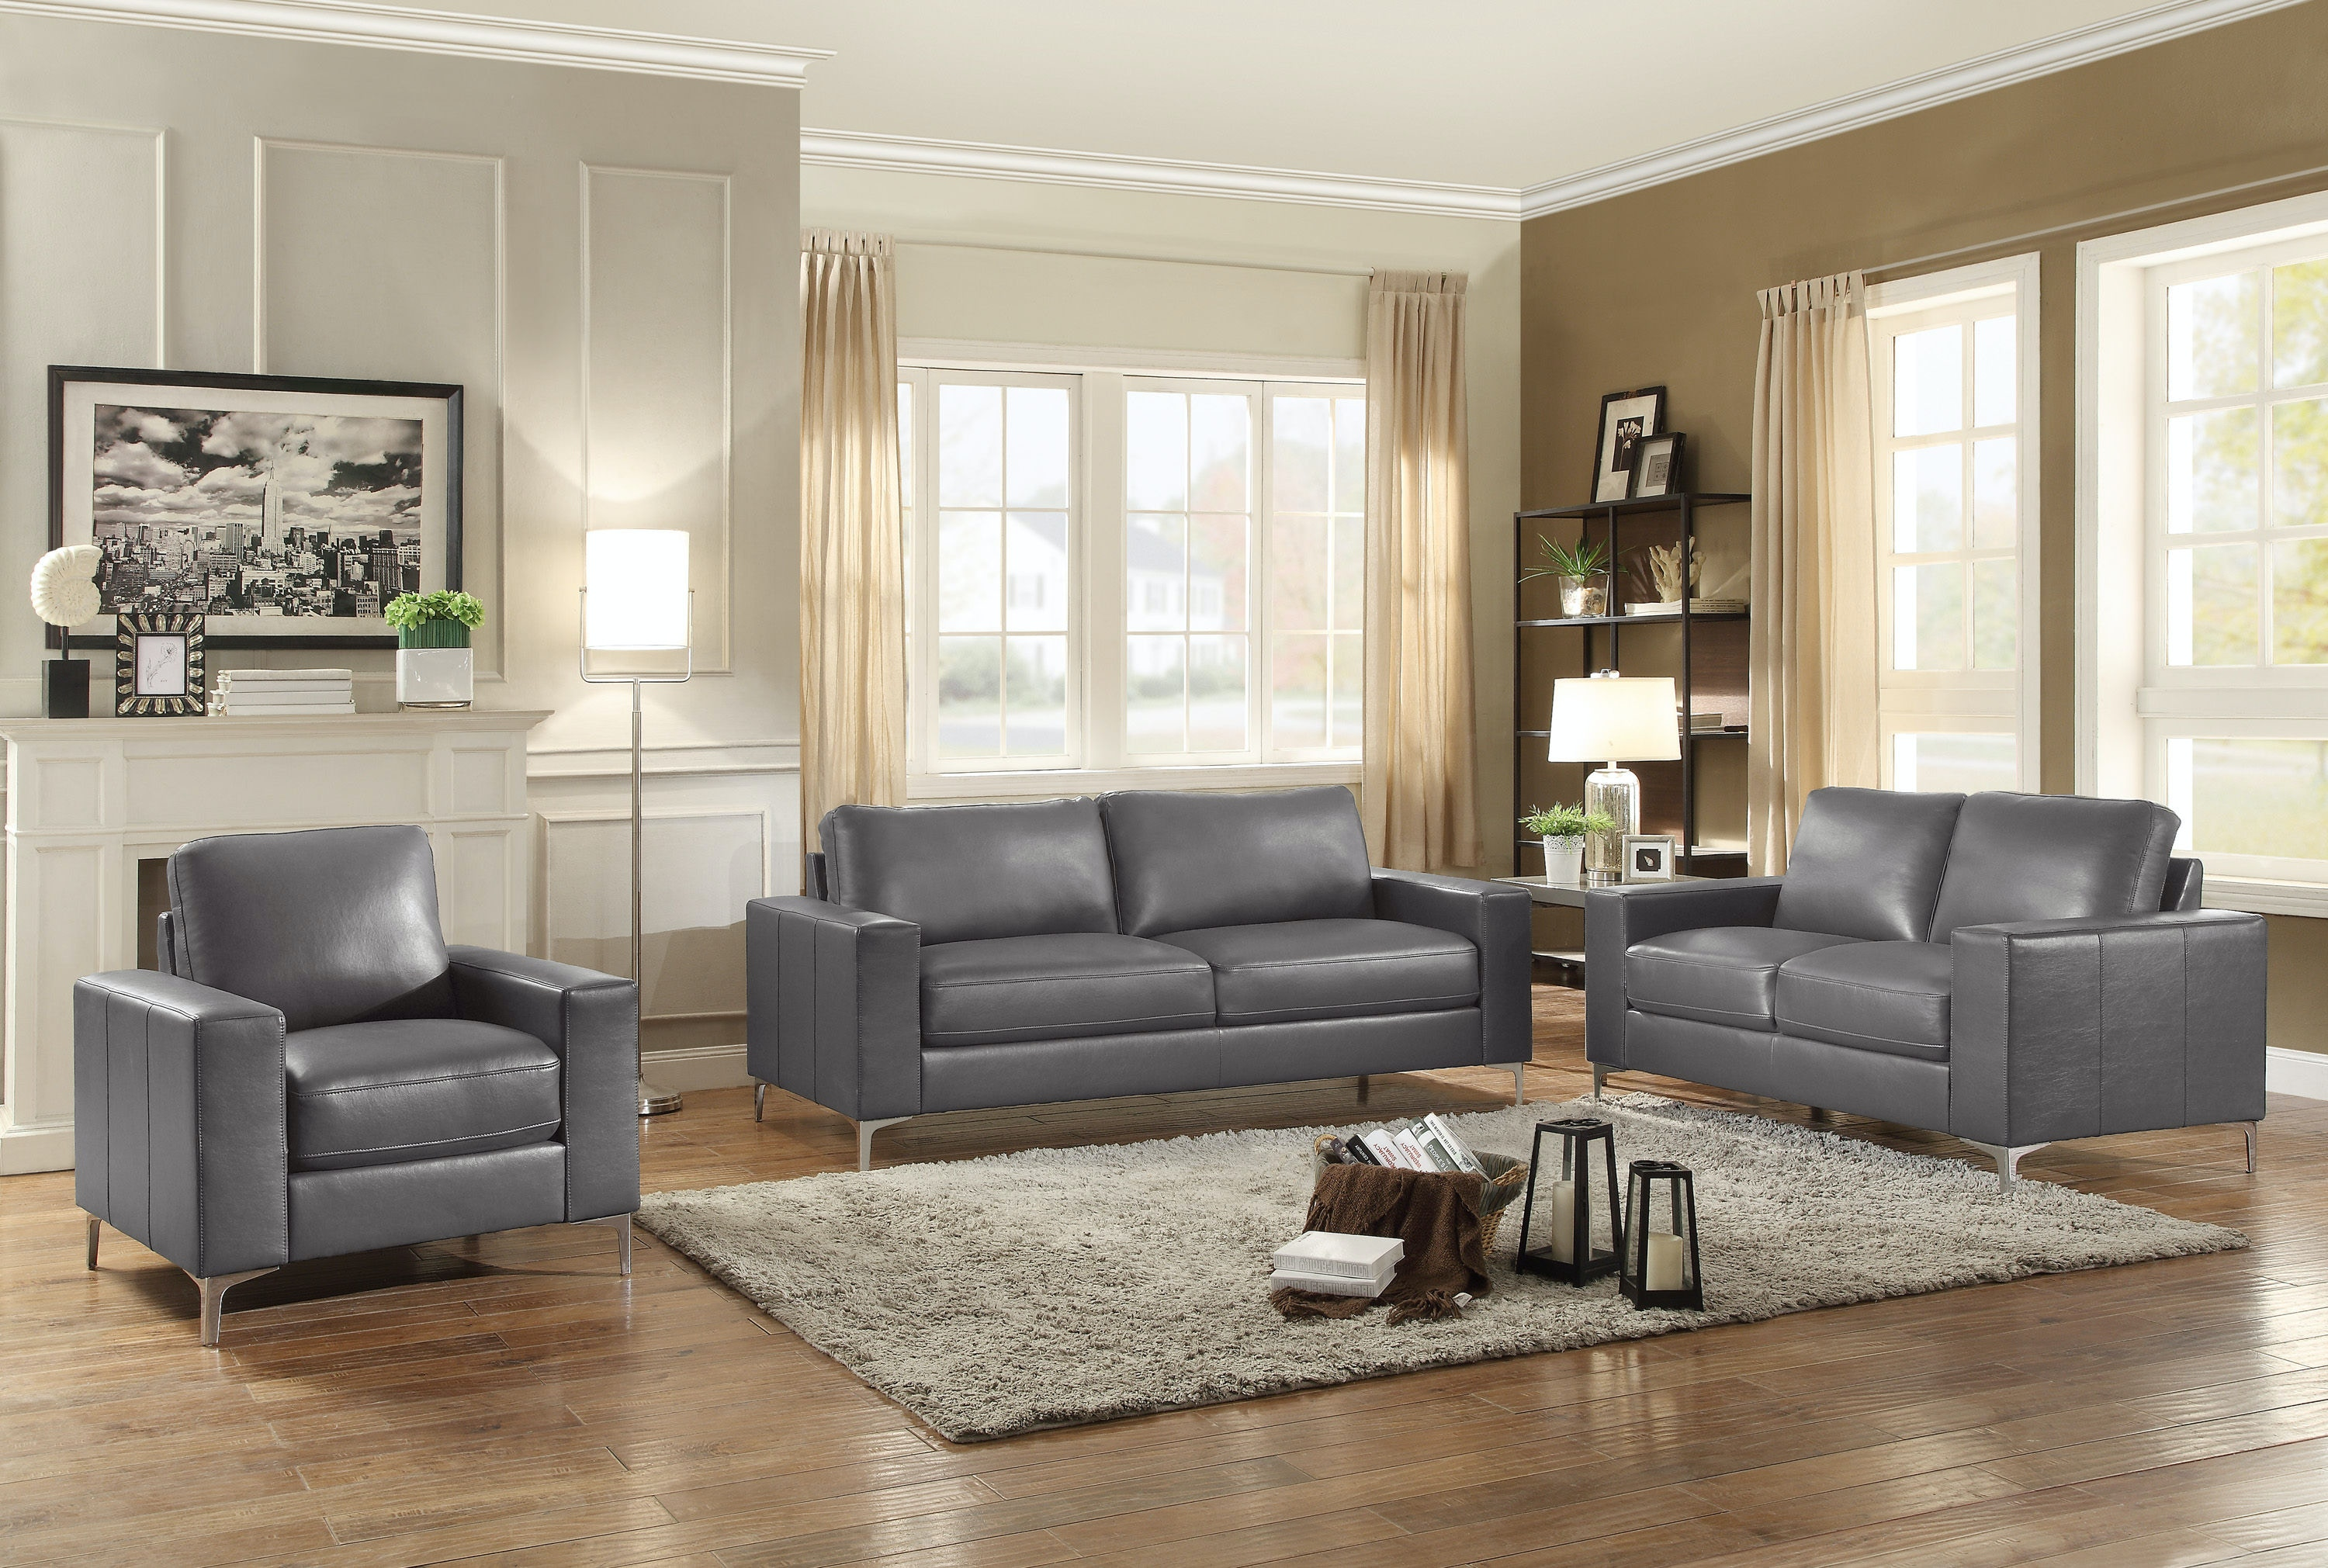 Living Room Sets Cleveland Ohio homelegance living room chair, grey leather gel match 8203gy-1